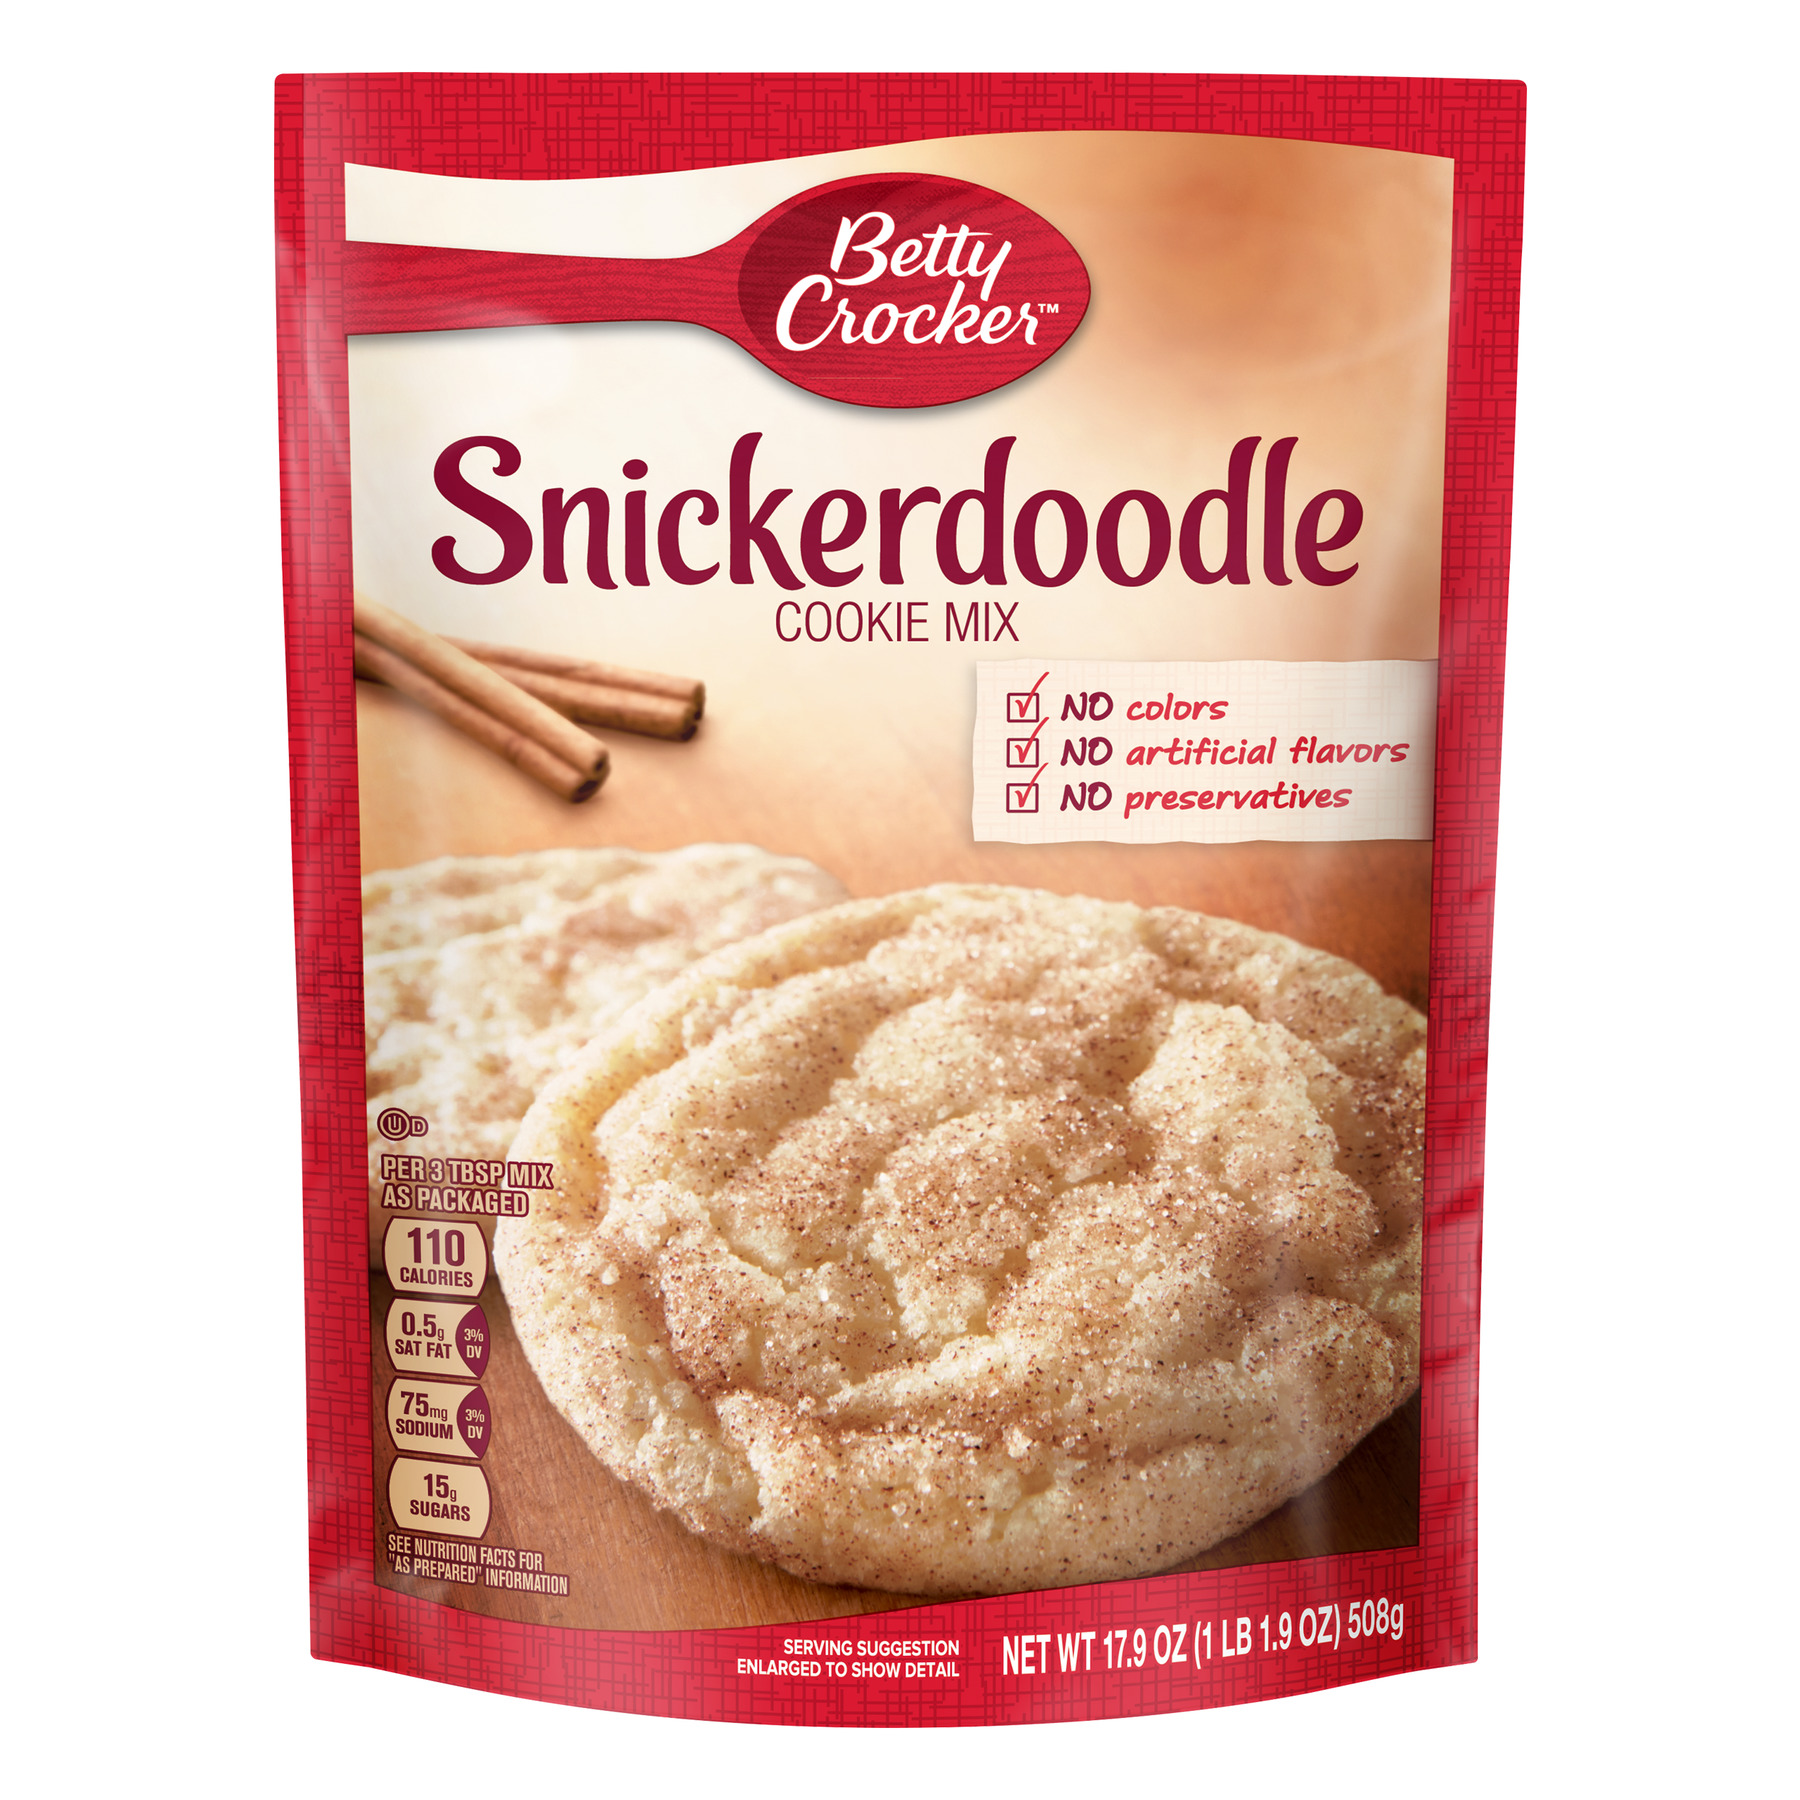 (8 Pack) Betty Crocker Snickerdoodle Cookie Mix, 17.9 oz Box